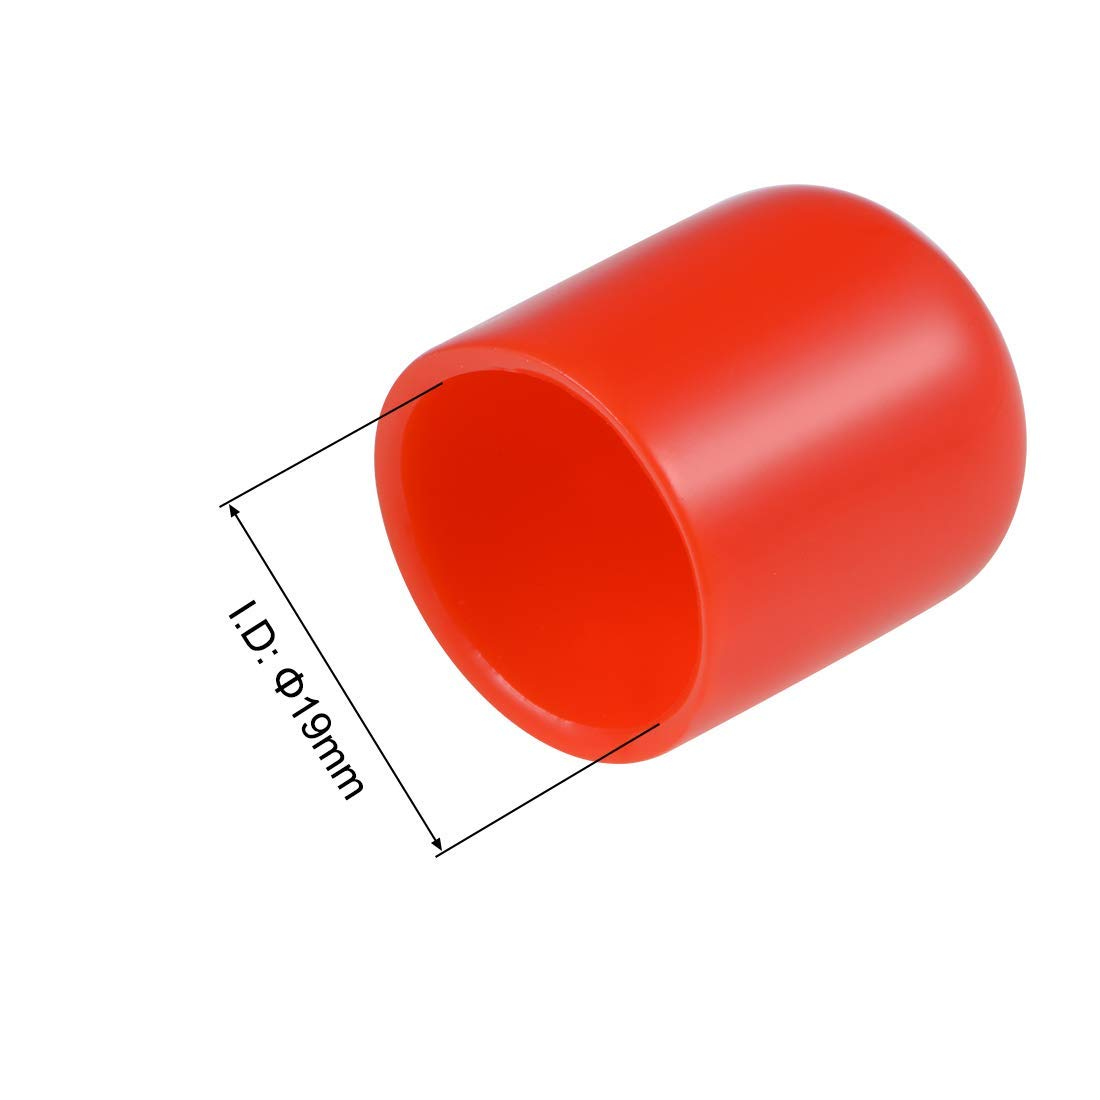 10pcs 3//4 inch ID Rubber end caps Round Cover lid Flexible Protective Screw caps Red